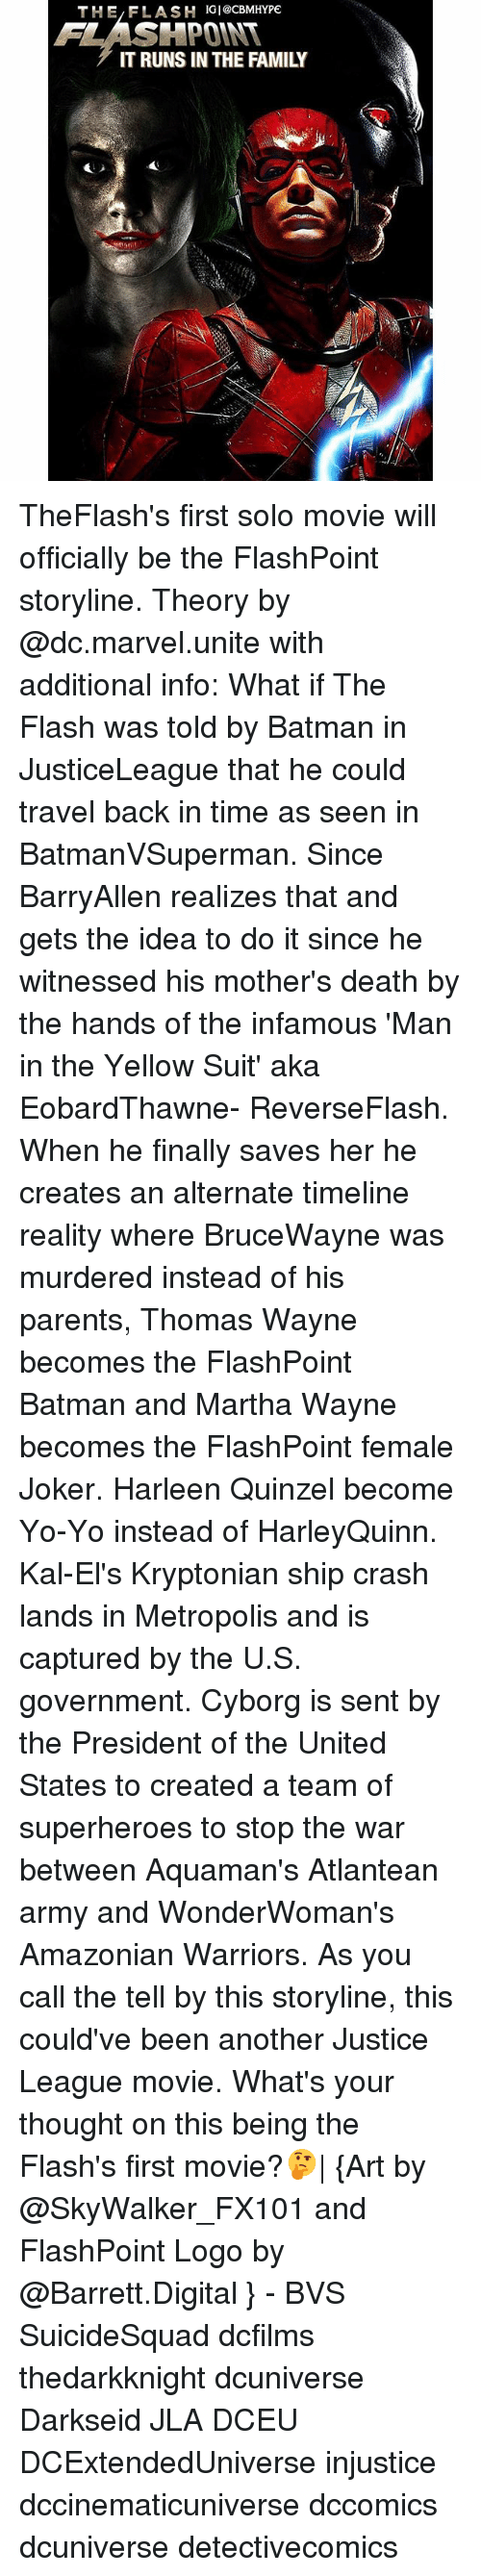 Batman, Family, and Joker: THE,FLASH IGI@cBMHYPE  FLASHPOINT  IT RUNS IN THE FAMILY TheFlash's first solo movie will officially be the FlashPoint storyline. Theory by @dc.marvel.unite with additional info: What if The Flash was told by Batman in JusticeLeague that he could travel back in time as seen in BatmanVSuperman. Since BarryAllen realizes that and gets the idea to do it since he witnessed his mother's death by the hands of the infamous 'Man in the Yellow Suit' aka EobardThawne- ReverseFlash. When he finally saves her he creates an alternate timeline reality where BruceWayne was murdered instead of his parents, Thomas Wayne becomes the FlashPoint Batman and Martha Wayne becomes the FlashPoint female Joker. Harleen Quinzel become Yo-Yo instead of HarleyQuinn. Kal-El's Kryptonian ship crash lands in Metropolis and is captured by the U.S. government. Cyborg is sent by the President of the United States to created a team of superheroes to stop the war between Aquaman's Atlantean army and WonderWoman's Amazonian Warriors. As you call the tell by this storyline, this could've been another Justice League movie. What's your thought on this being the Flash's first movie?🤔| {Art by @SkyWalker_FX101 and FlashPoint Logo by @Barrett.Digital } - BVS SuicideSquad dcfilms thedarkknight dcuniverse Darkseid JLA DCEU DCExtendedUniverse injustice dccinematicuniverse dccomics dcuniverse detectivecomics